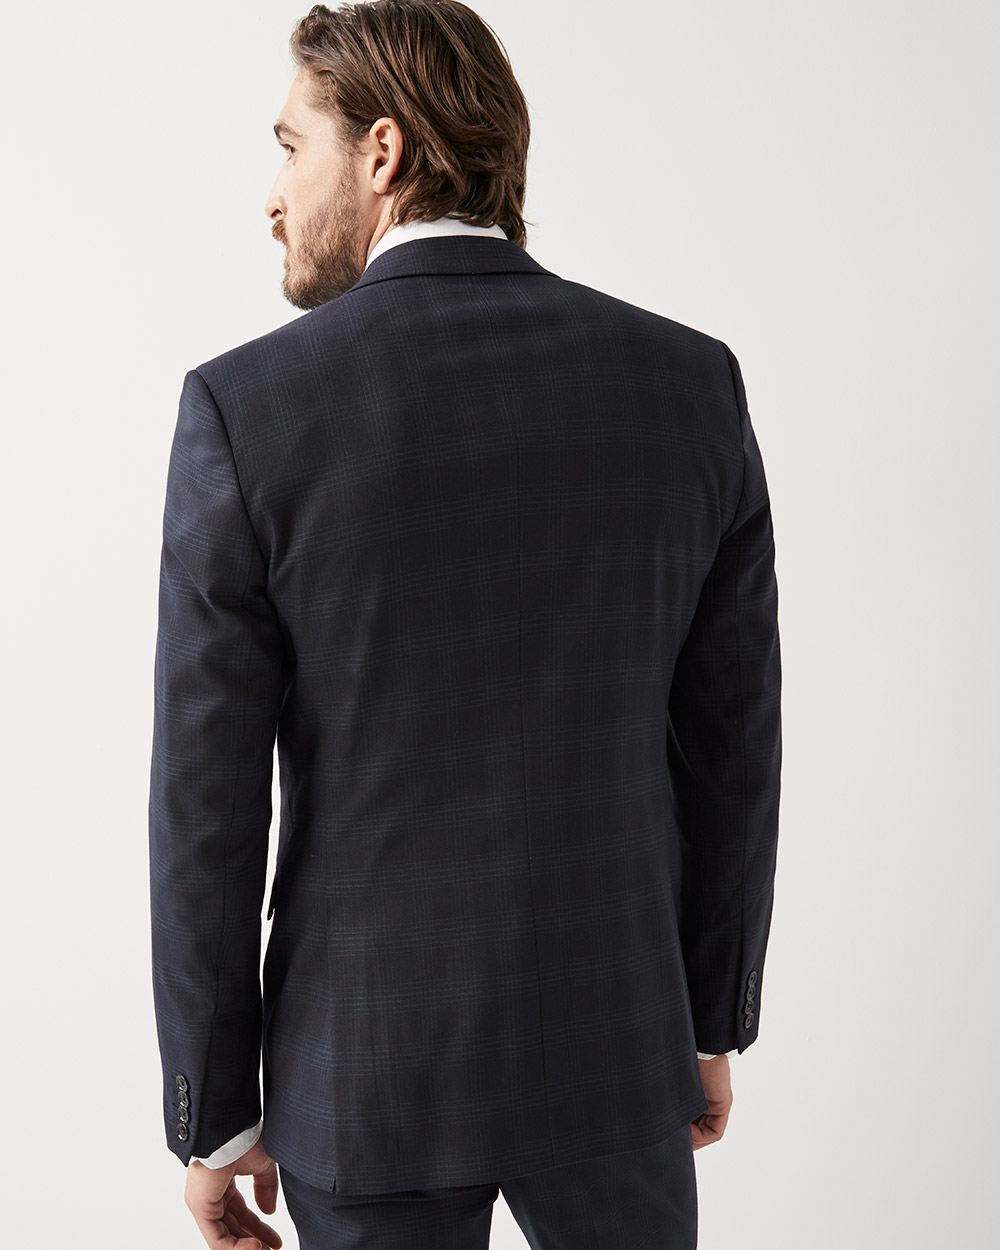 Tailored Fit Tonal check suit Blazer - Tall